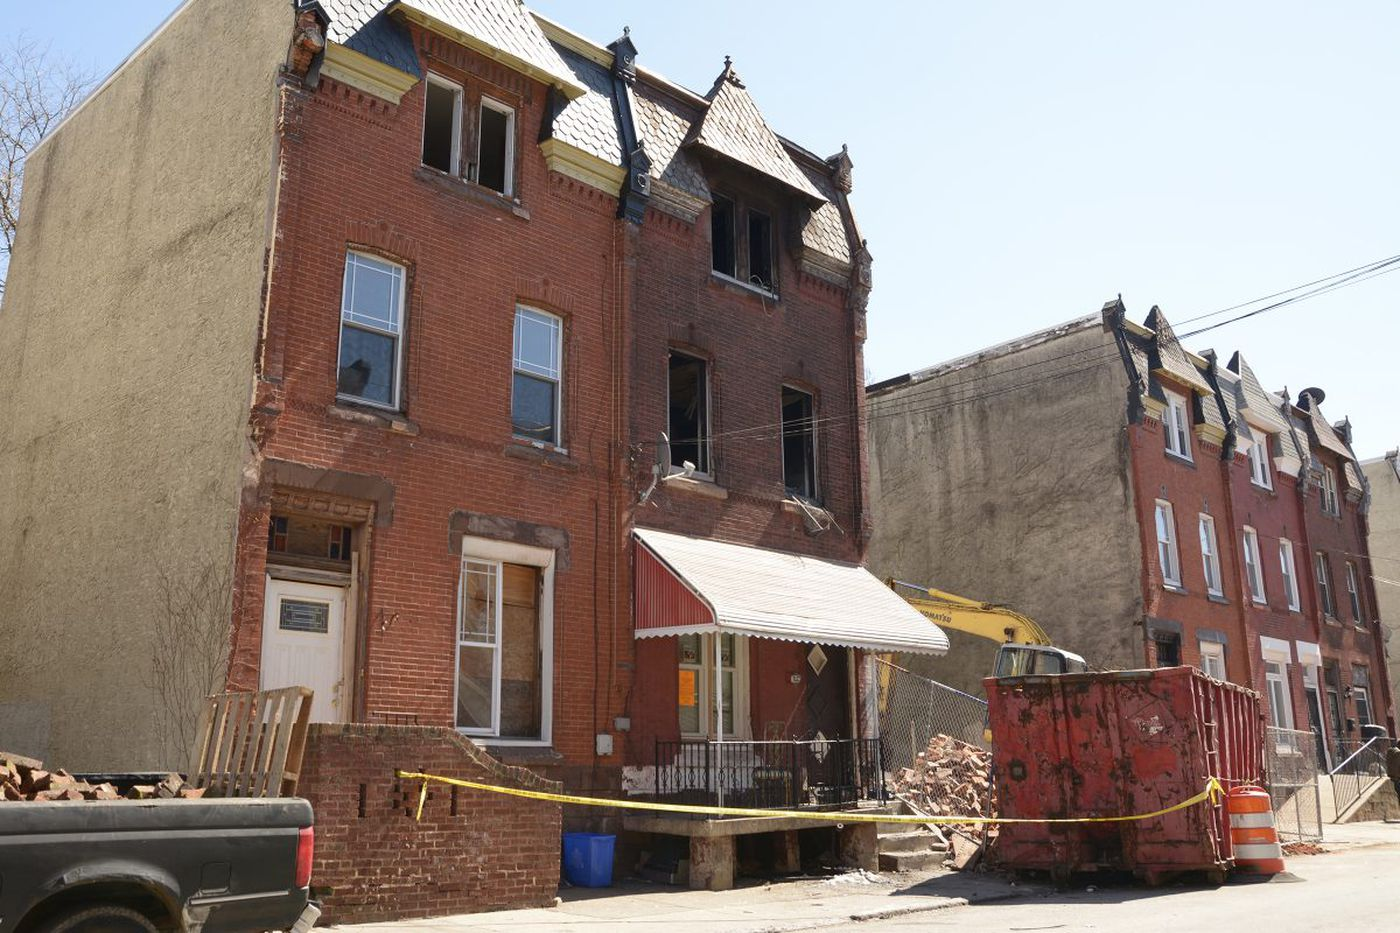 3 days after a North Philly house fire, 3 found dead inside